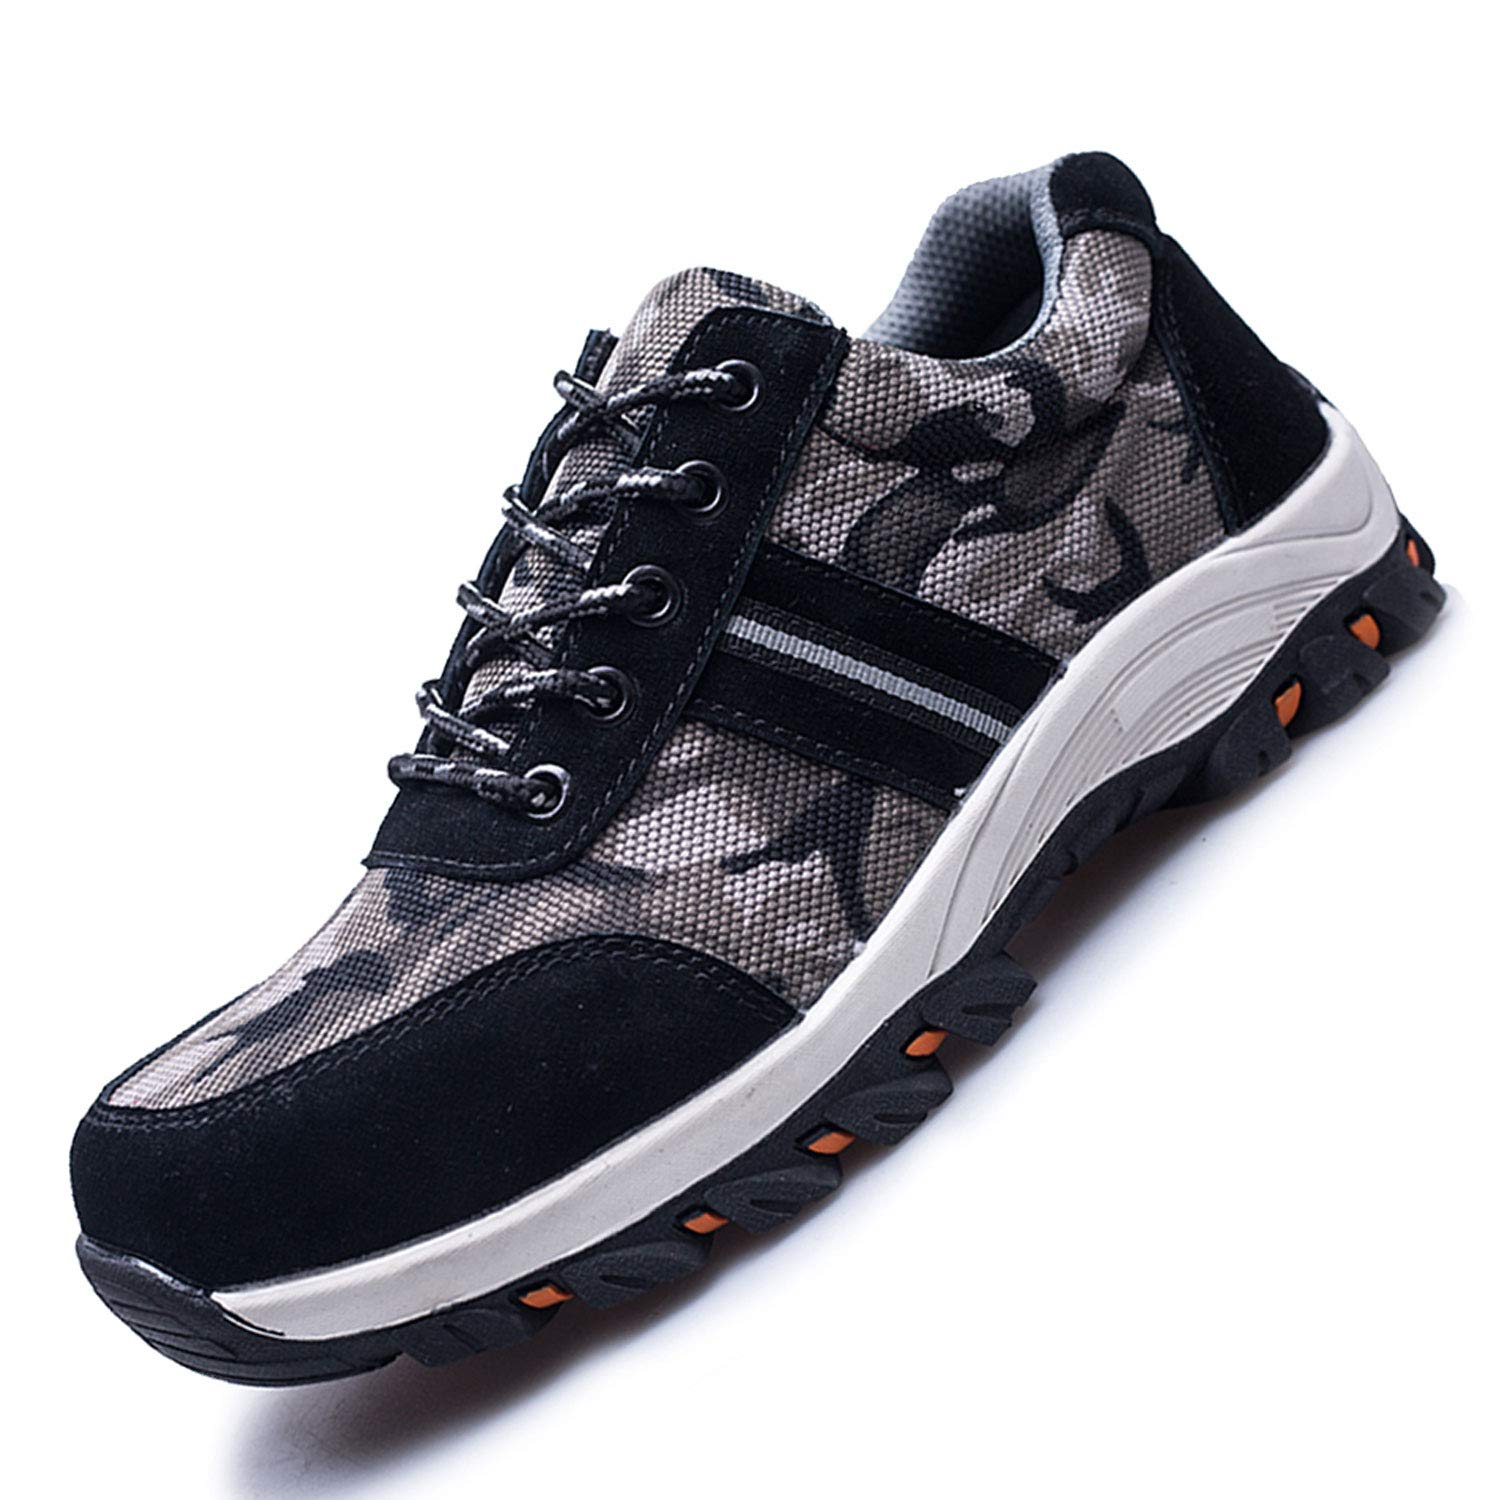 e778571dc665c JACKSHIBO Steel Toe Work Shoes for Men Women Safety Shoes Breathable  Industrial Construction Shoes